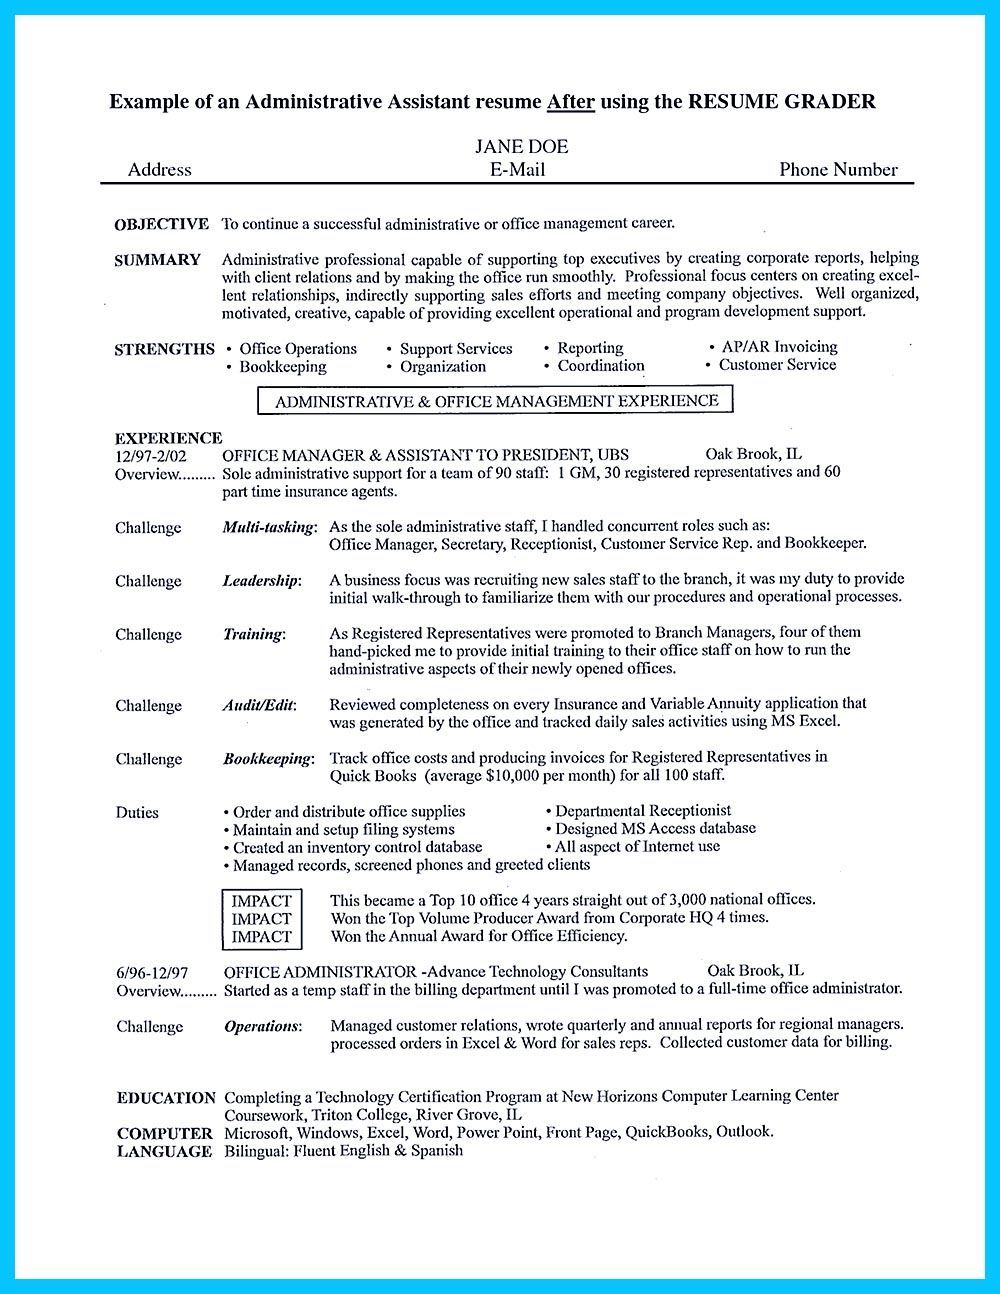 Audit Associate Resume Brilliant In Writing Entry Level Administrative Assistant Resume You Need To .